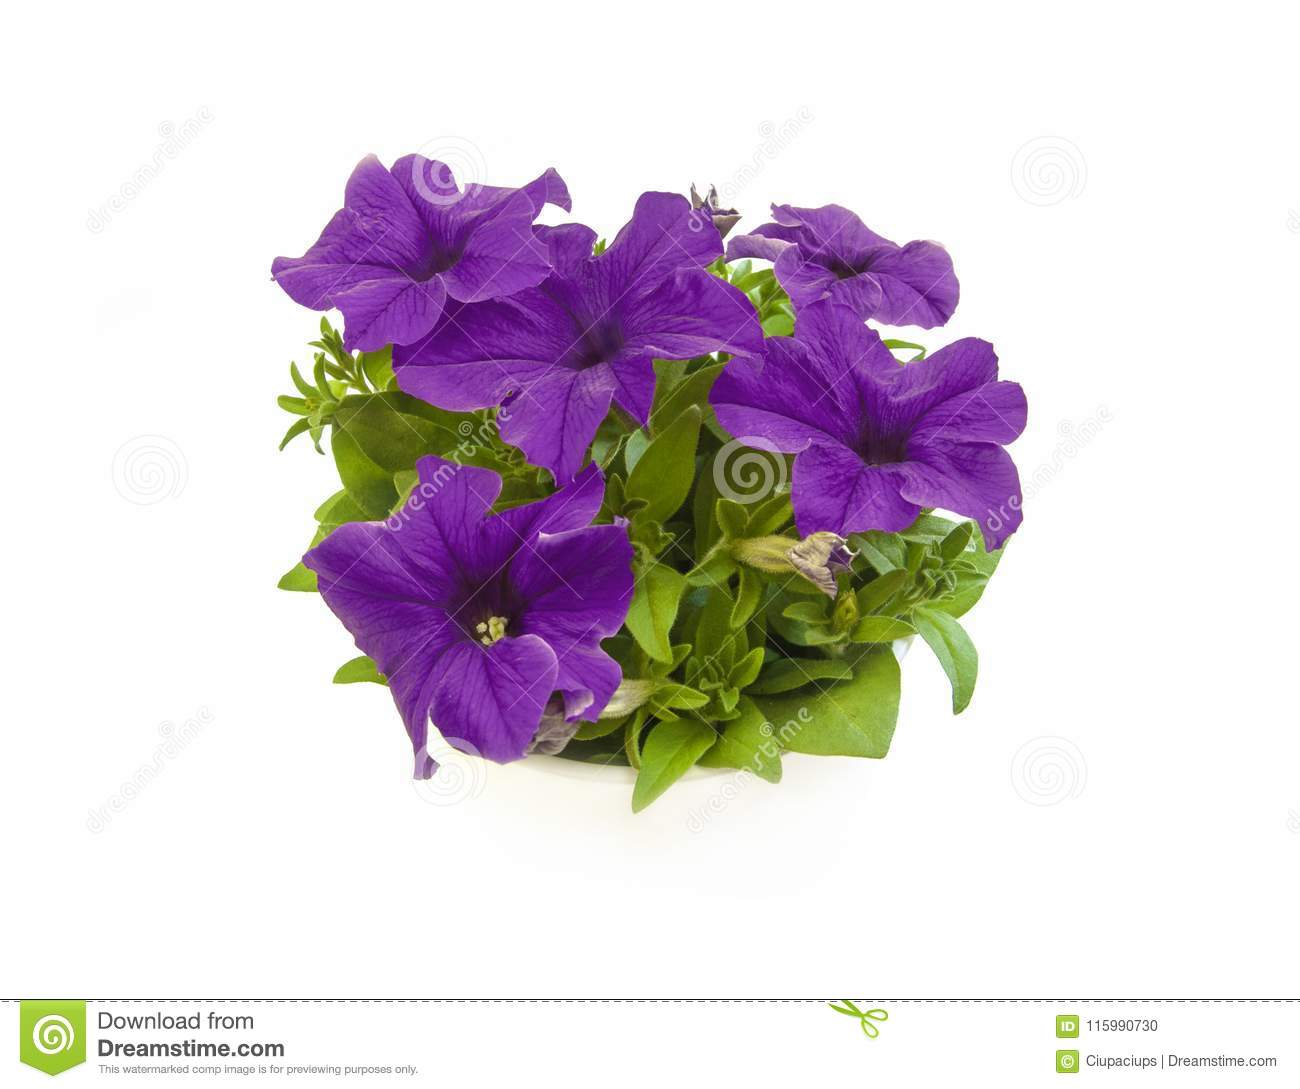 1d6af39888 Purple Petunia Blooming In Pot Closeup Top View Stock Photo - Image ...